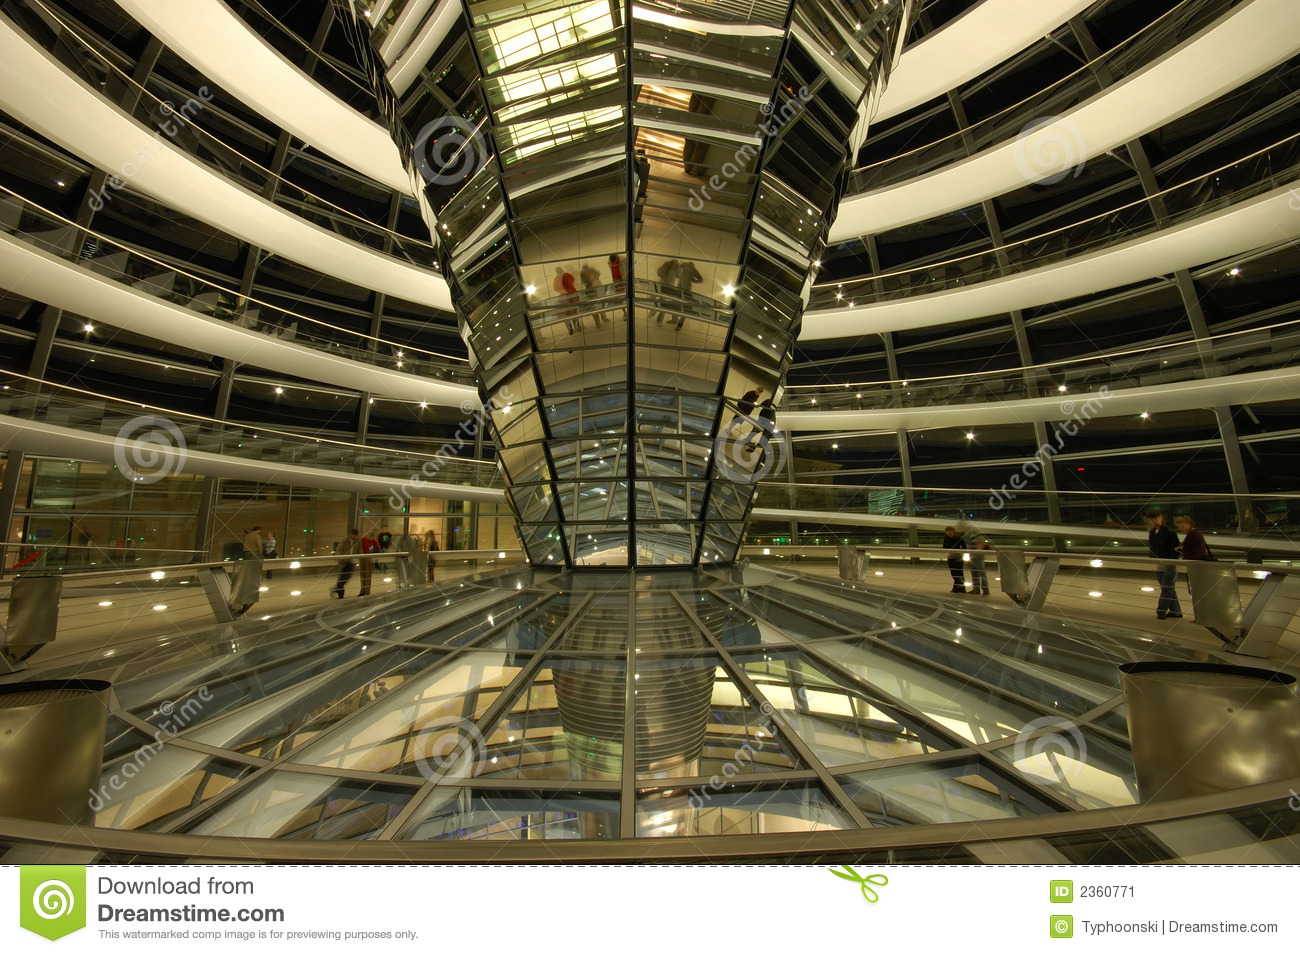 interior dome reichstag berlin stock image image 2360771. Black Bedroom Furniture Sets. Home Design Ideas